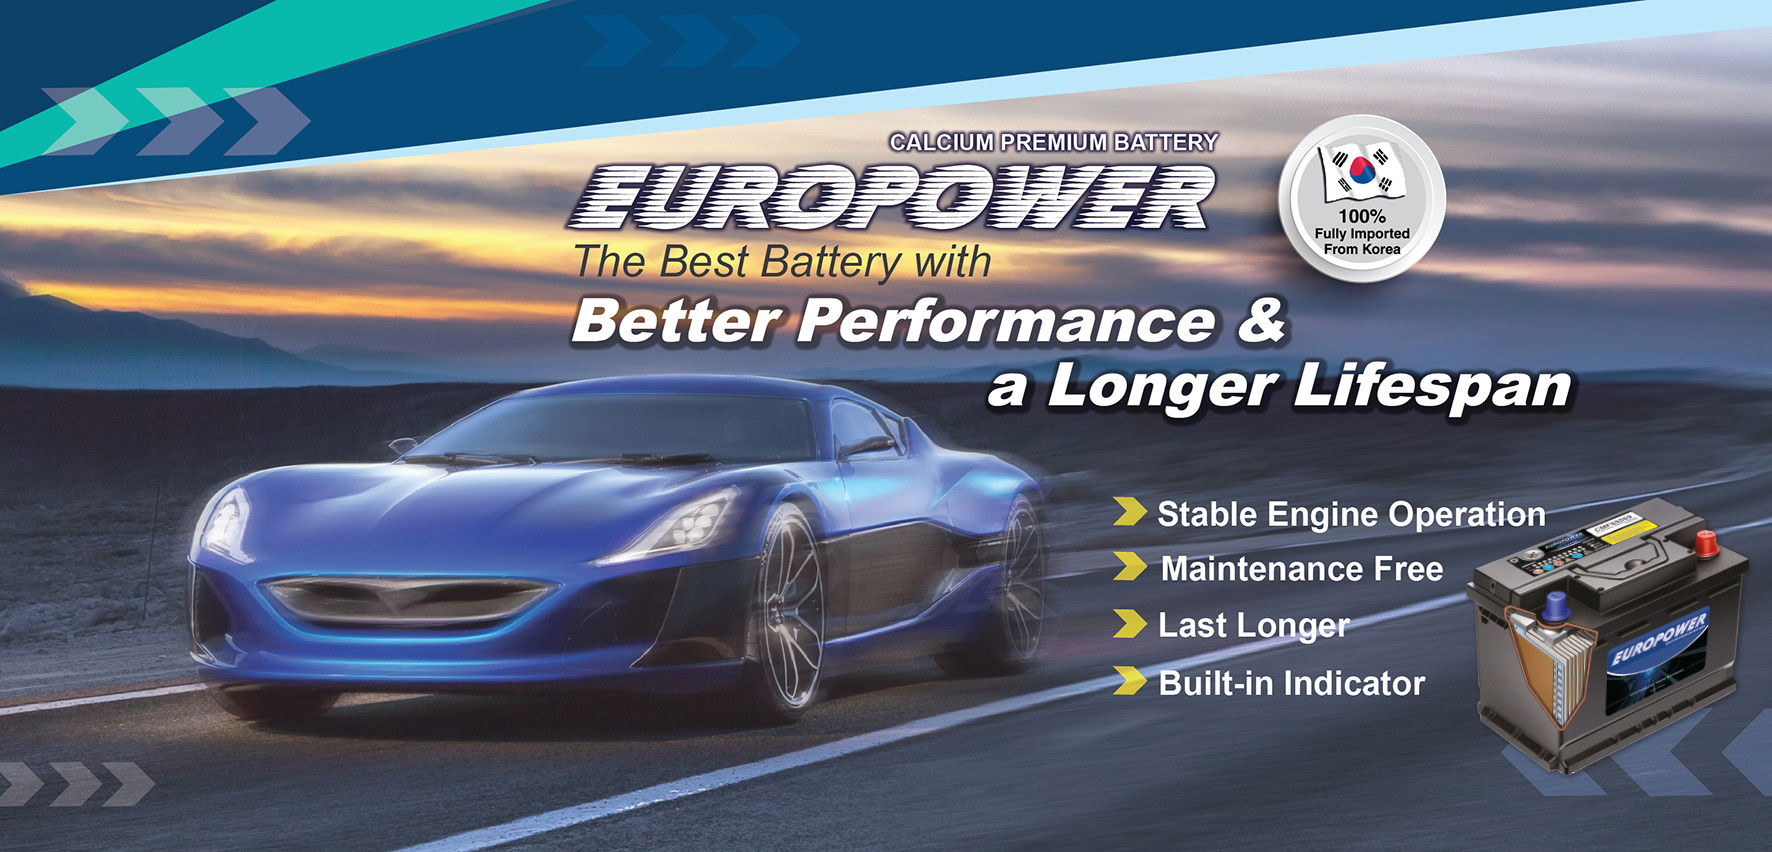 Europower Batteries